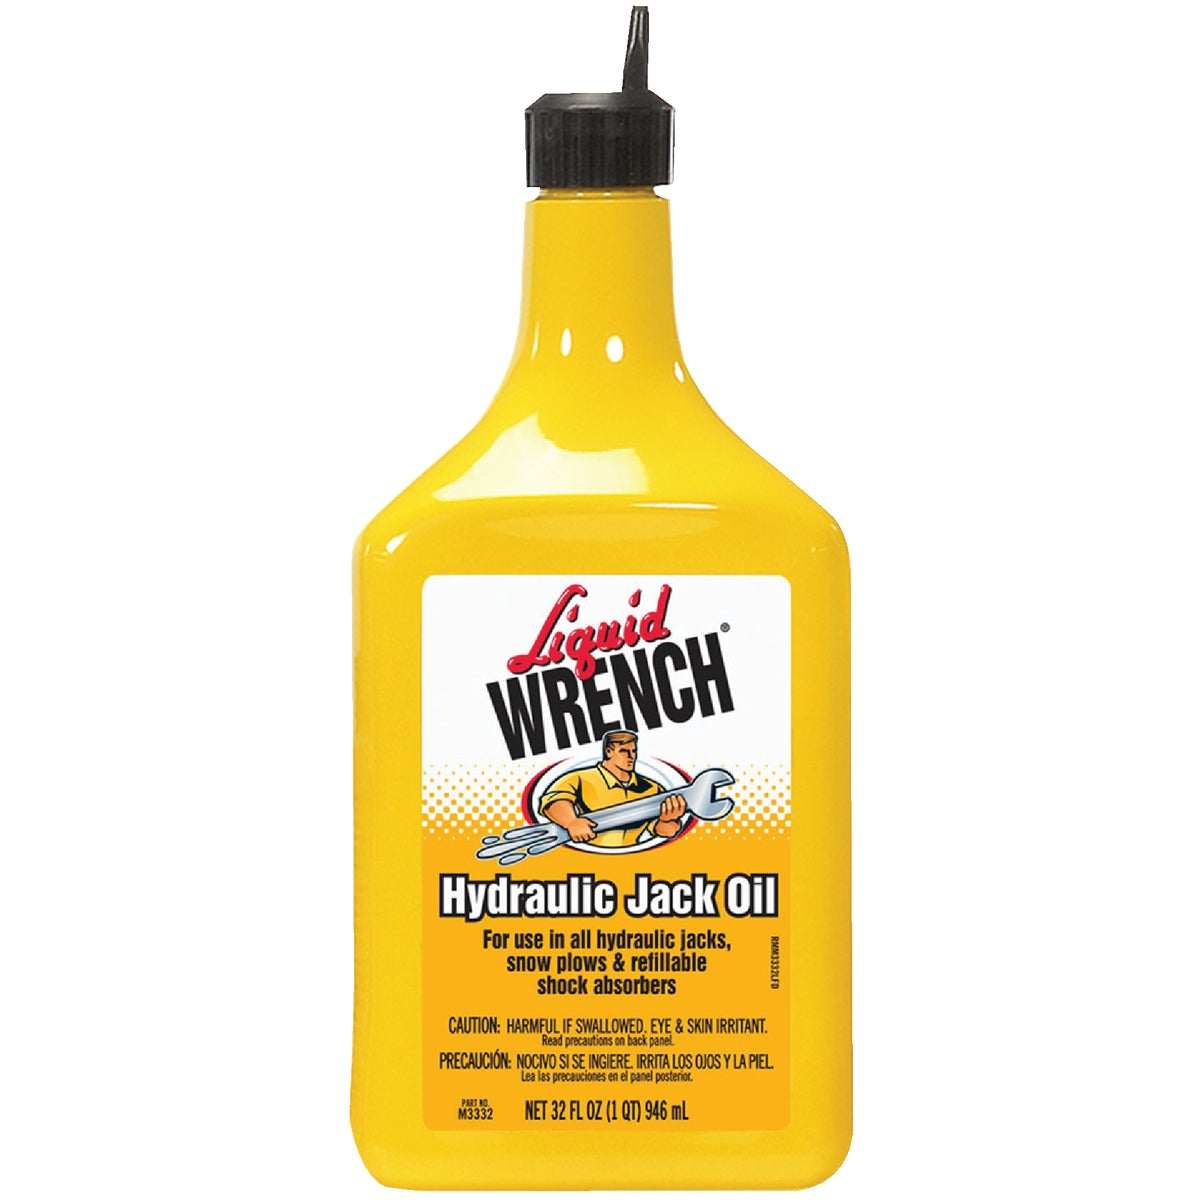 32OZ HYDRAULIC OIL - M3332 by Radiator Specialty